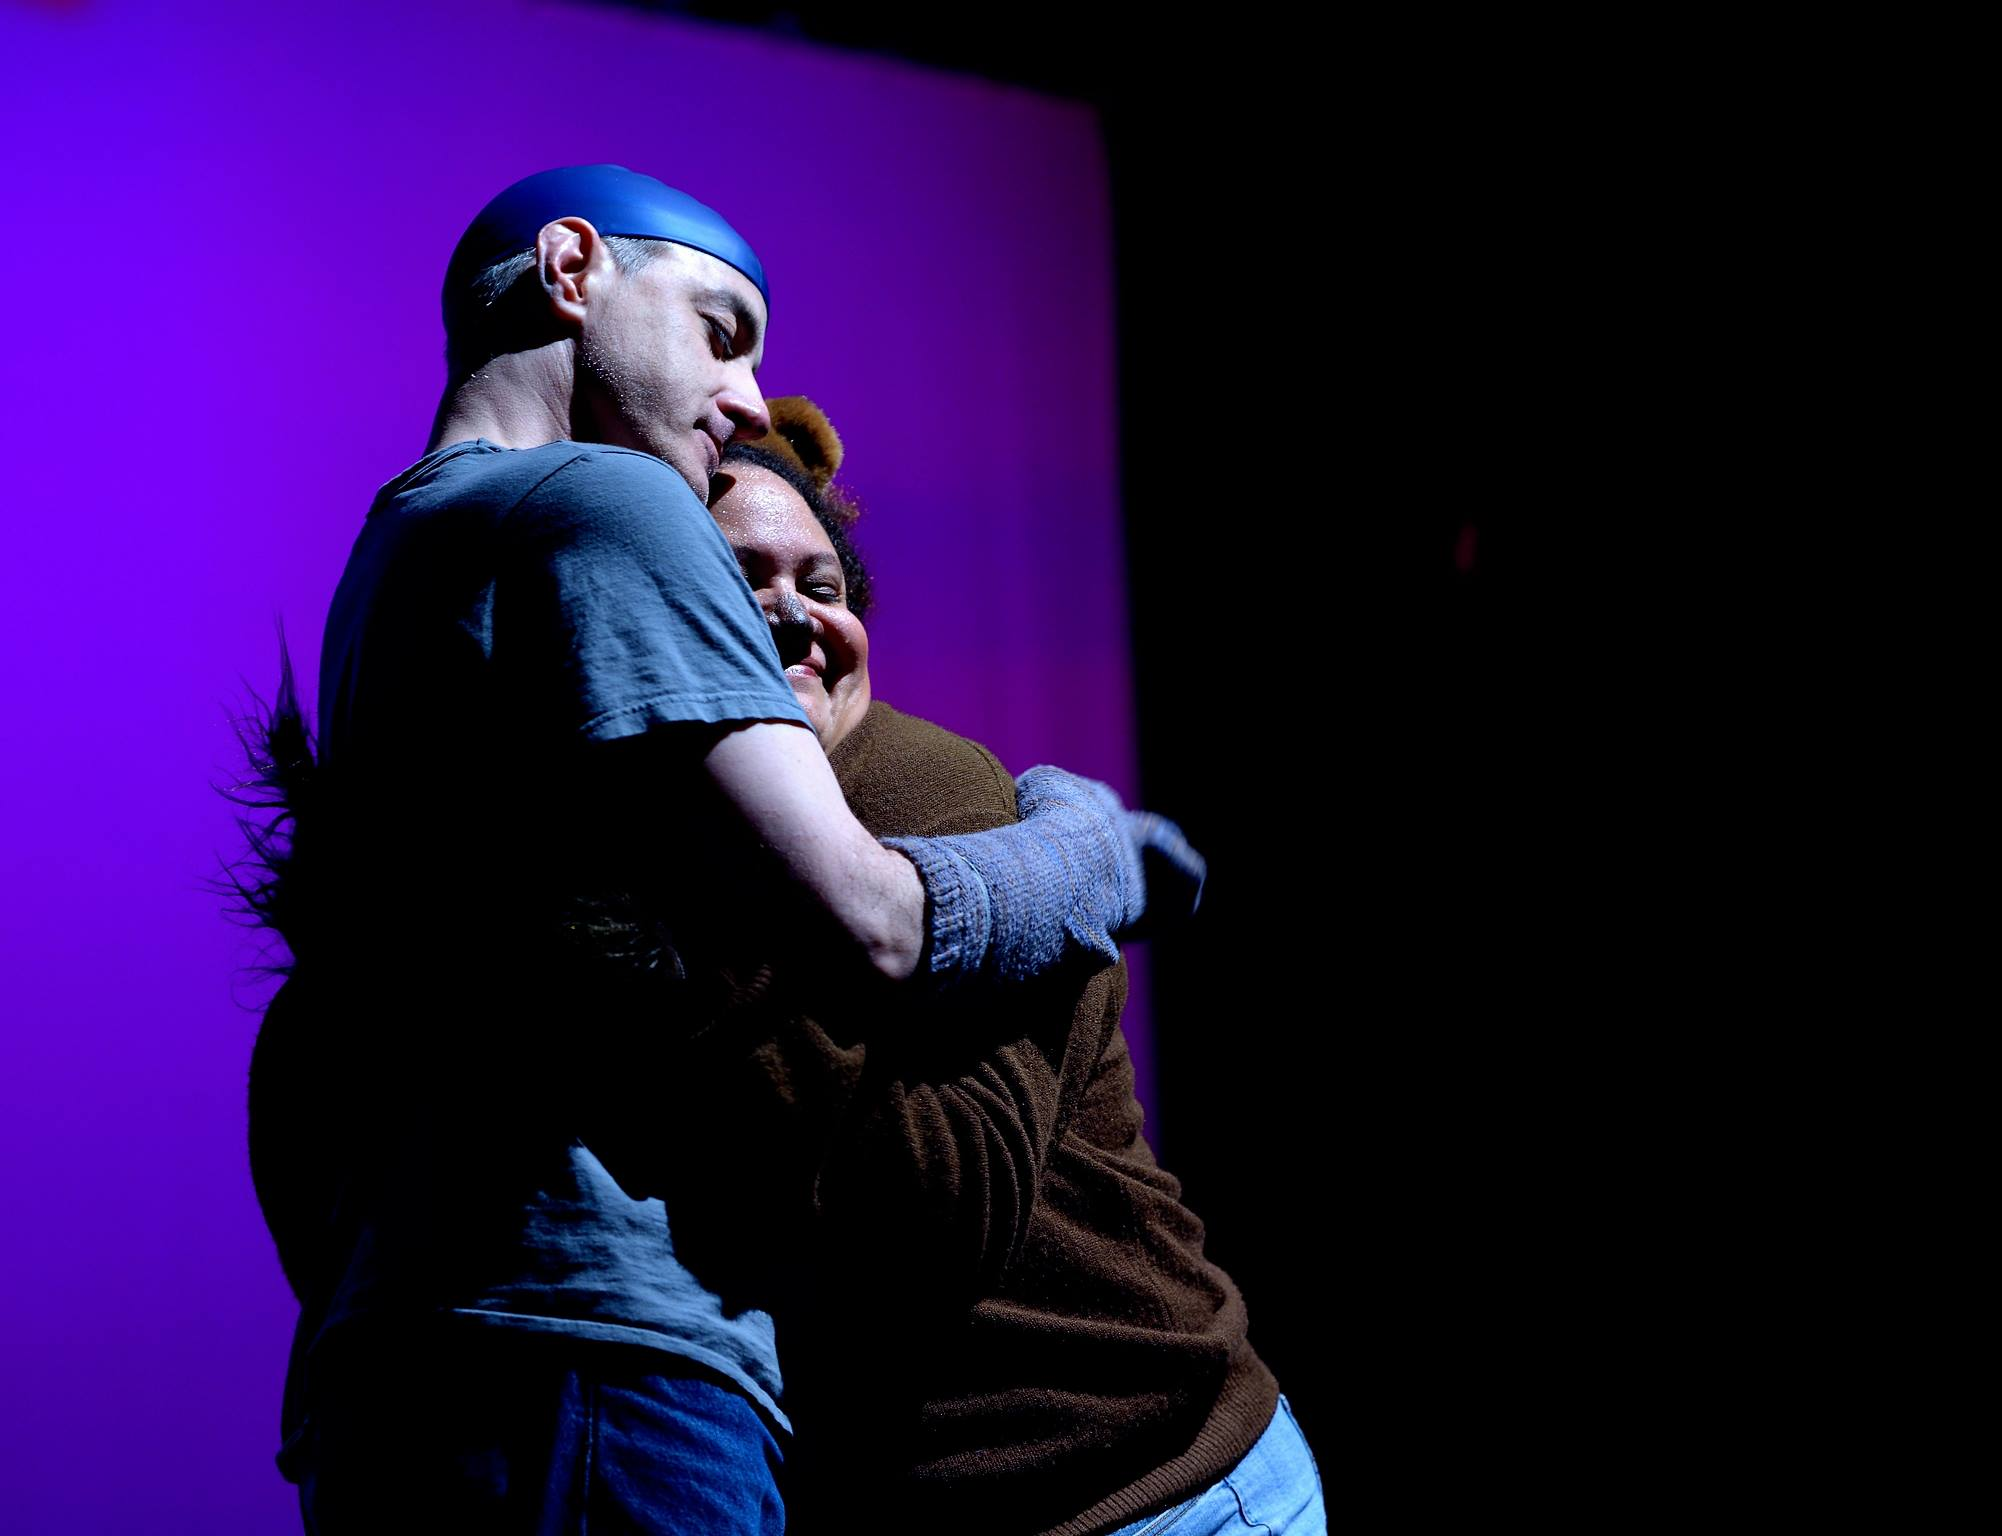 Mark Waldstein and Rebecca M. Davis in  A Fish and a Bear in Purgatory  at 14/48: The World's Quickest Theatre Festival. Photo by Joe Iano.